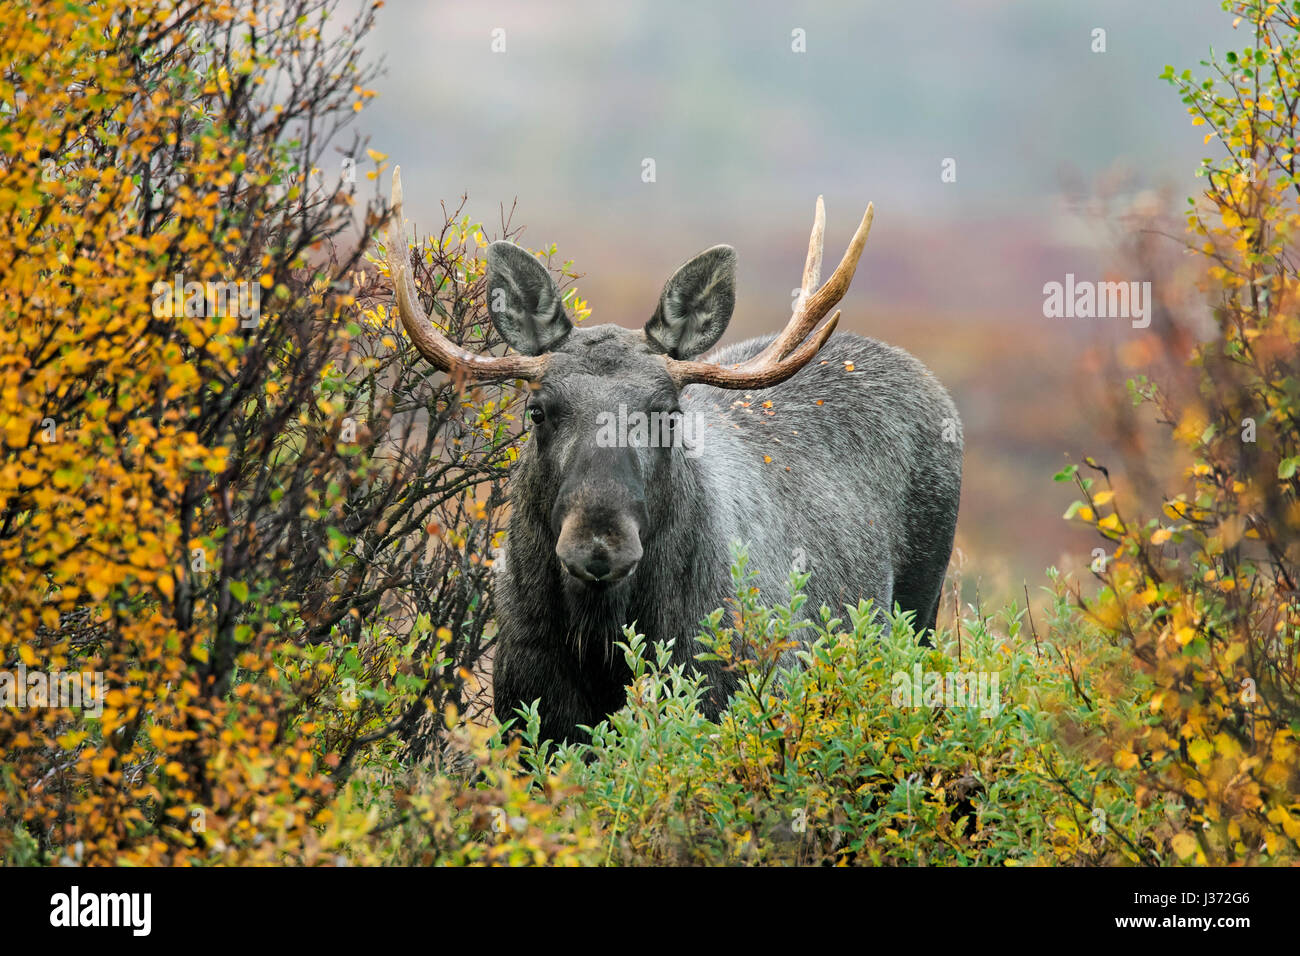 Moose (Alces alces) young bull with small antlers foraging in moorland with willow trees in autumn, Scandinavia Stock Photo